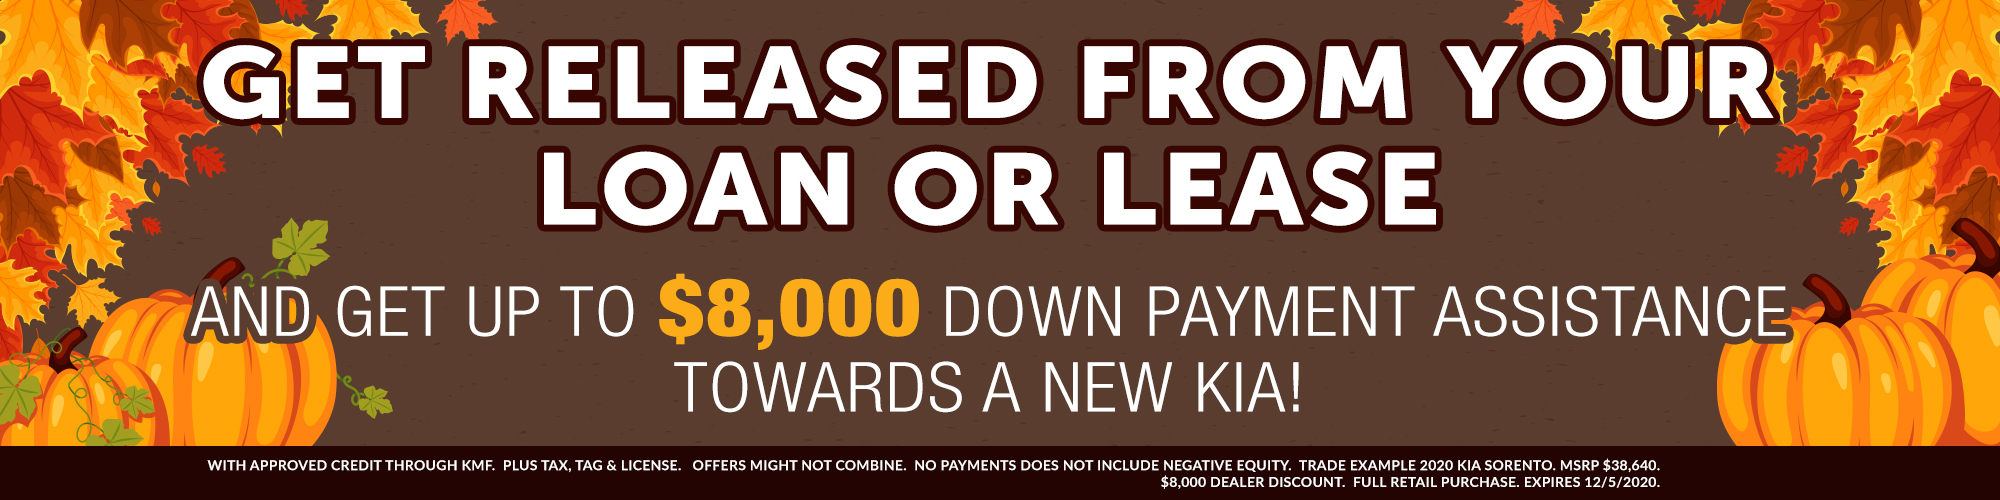 GET RELEASED FROM YOUR LOAN OR LEASE AND GET UP TO $7,000 TRADE IN ASSISTANCE TOWARDS A NEW KIA!